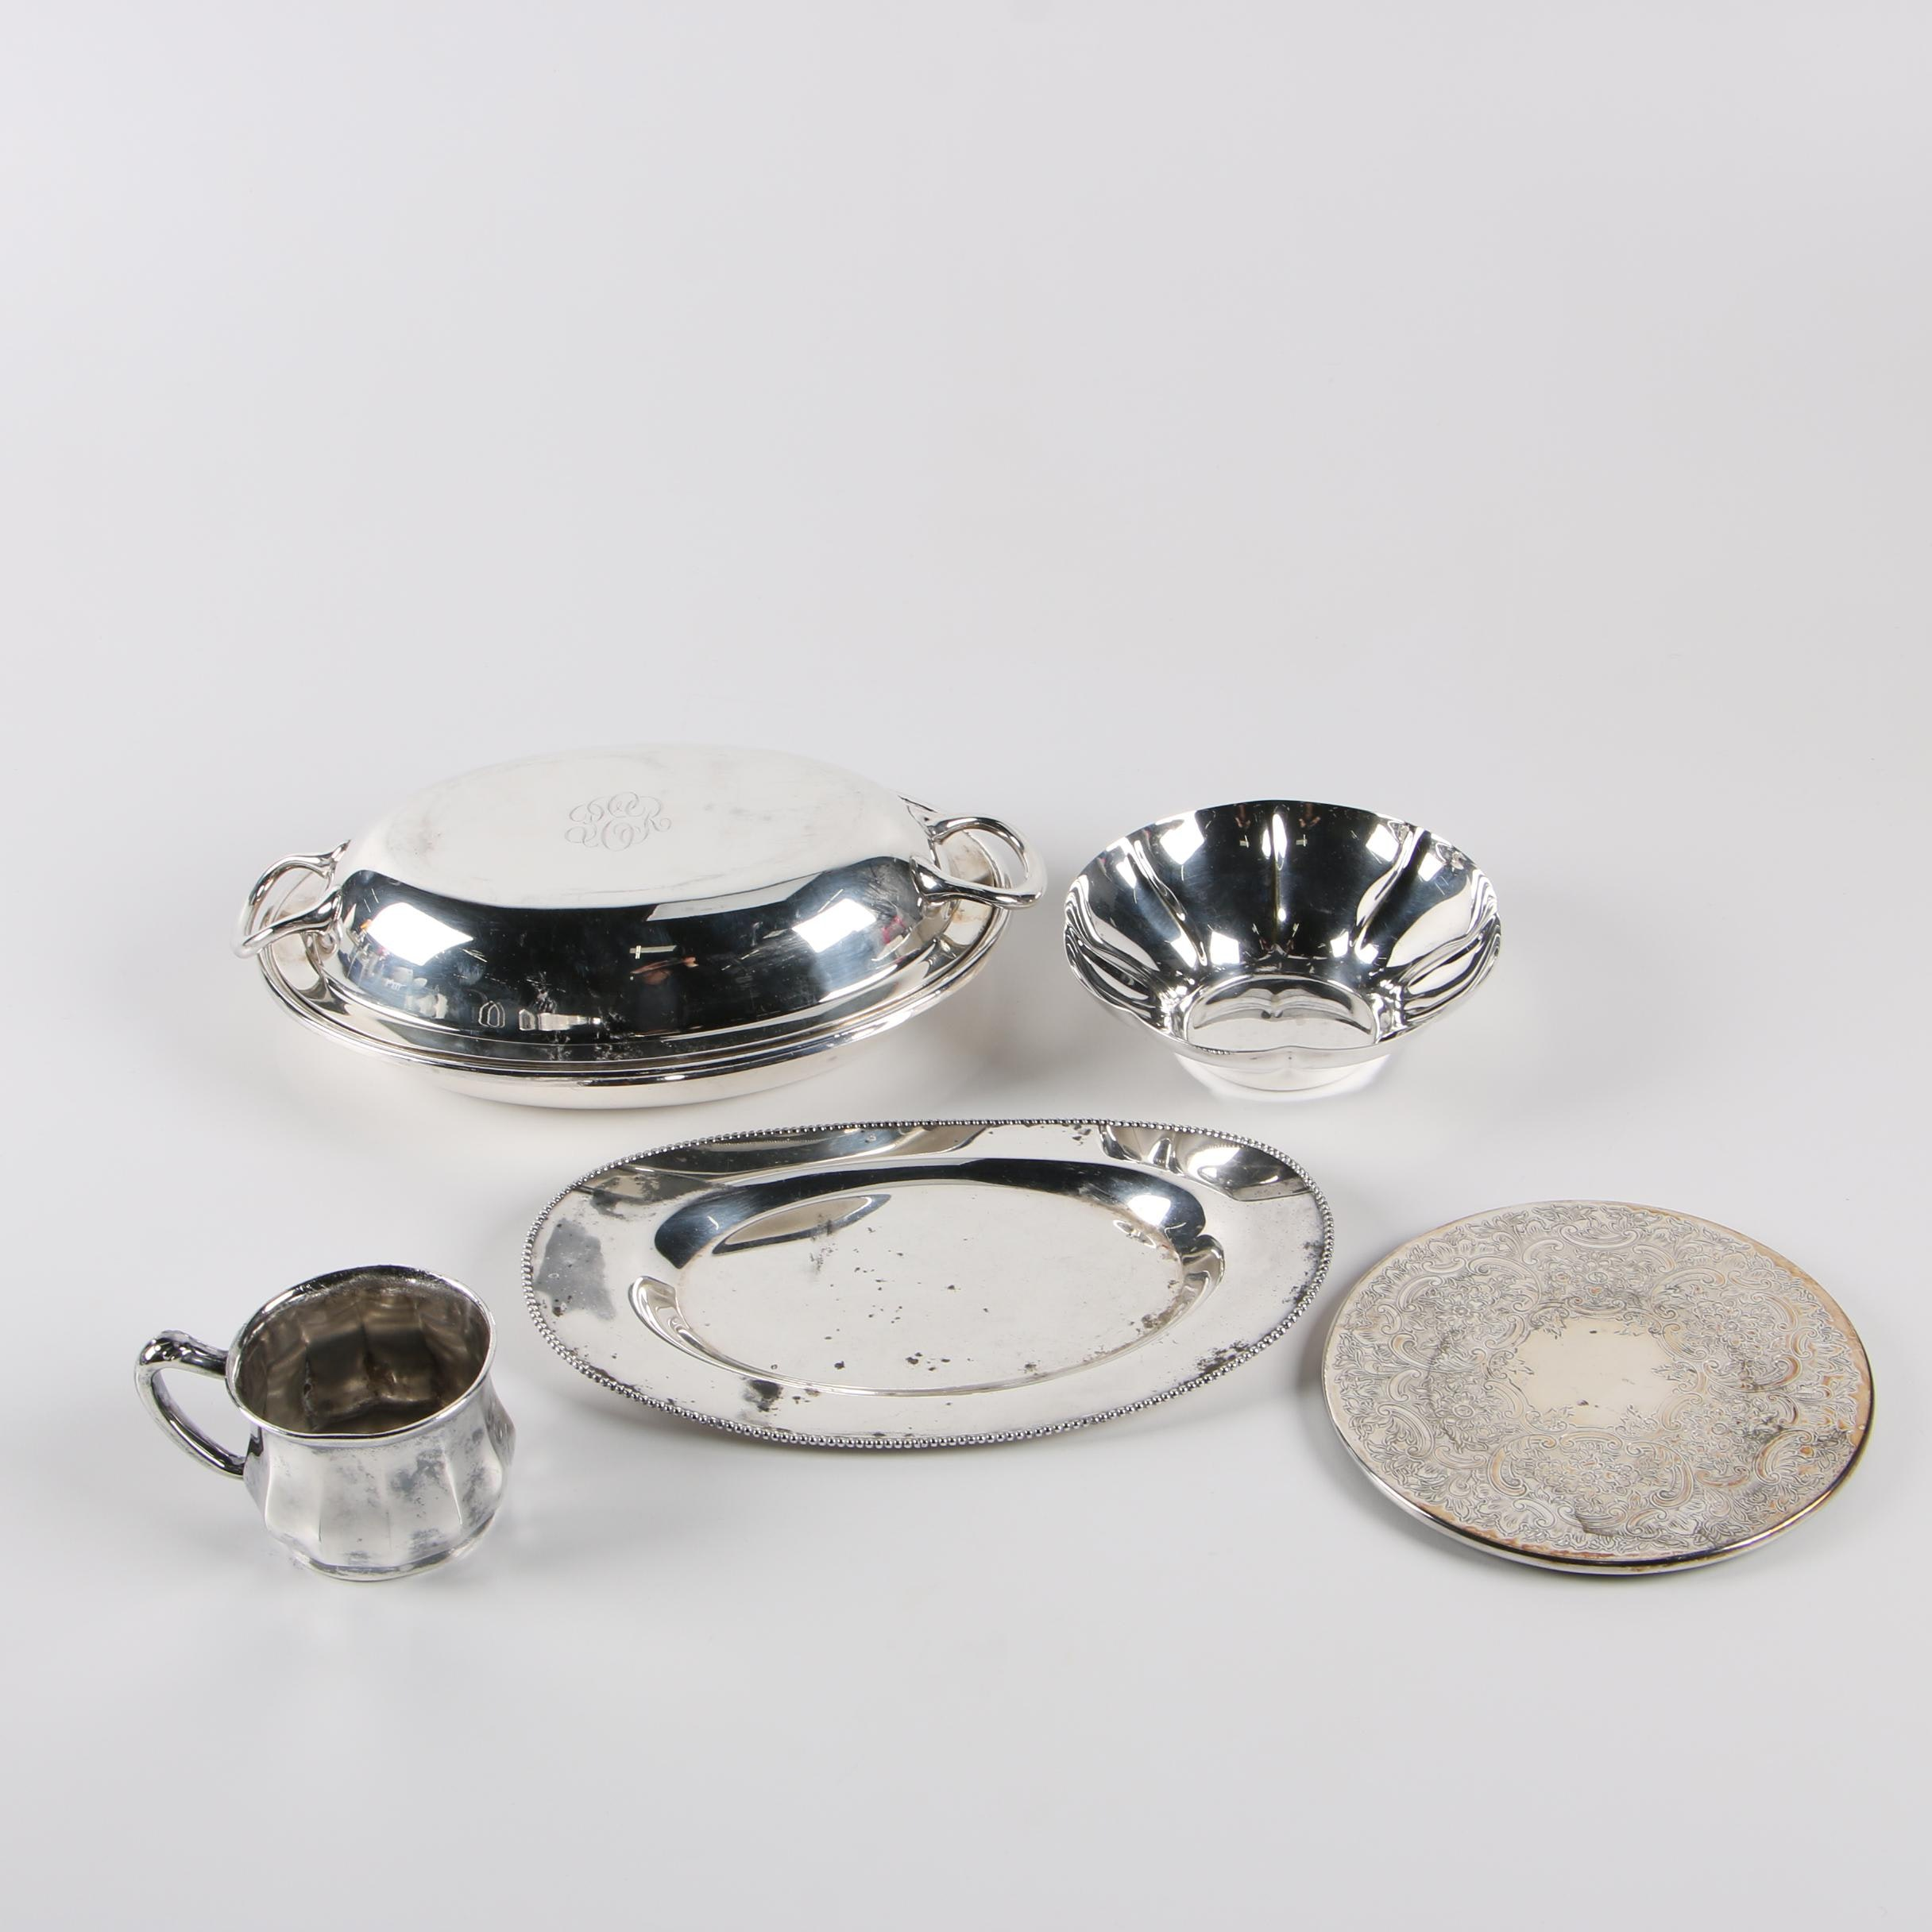 Reed & Barton Covered Vegetable Dish with Other Silver Plate Serveware